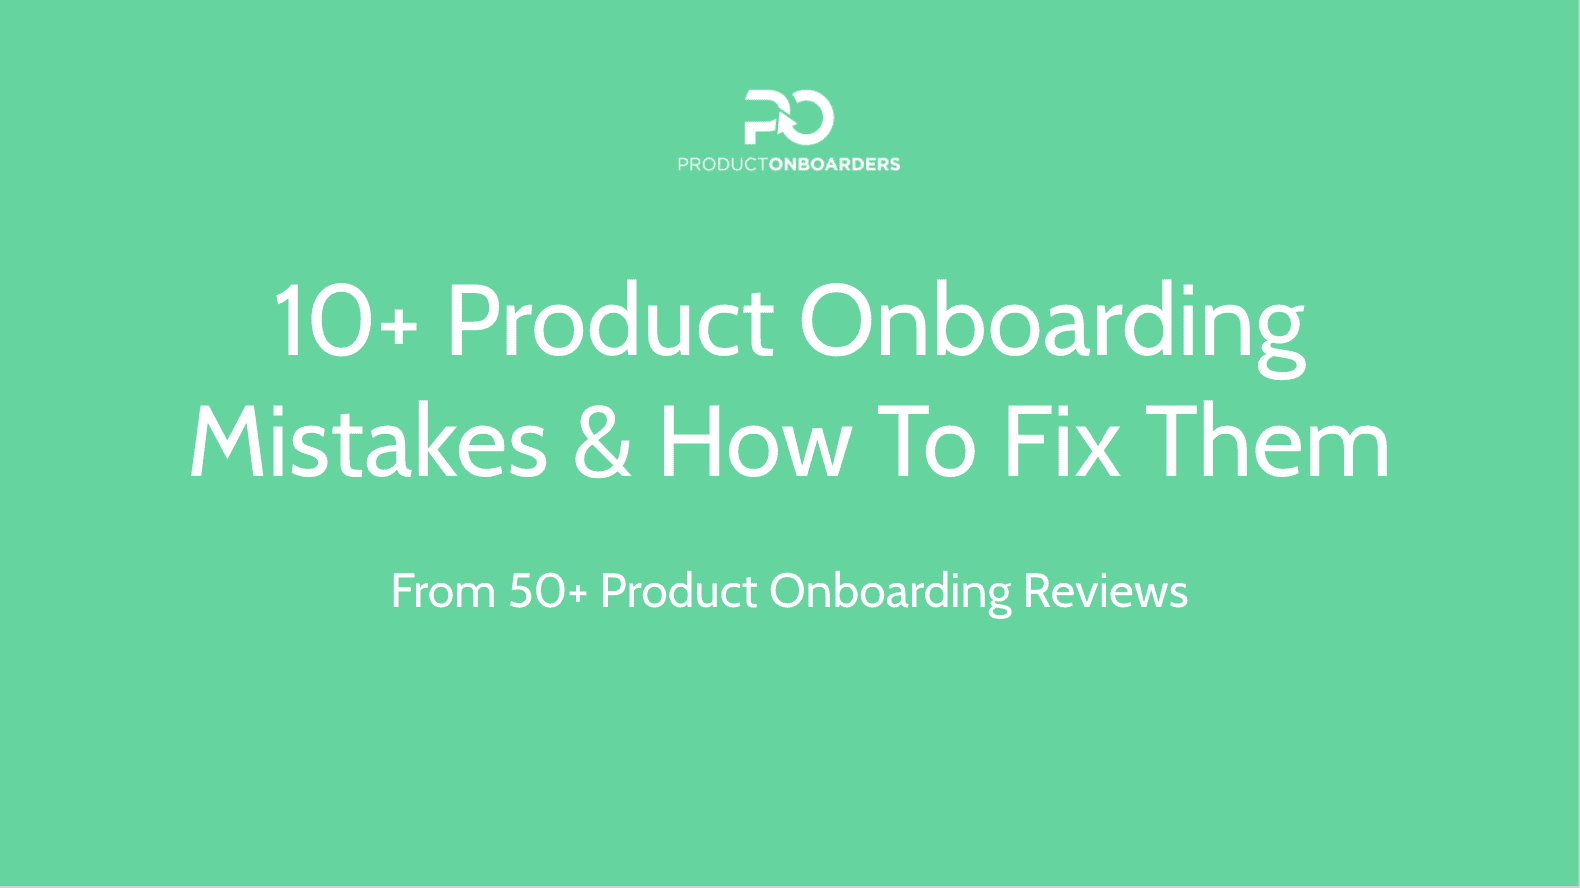 10+ Product Onboarding Mistakes & How To Fix Them - SaaStock Ljubljana 2